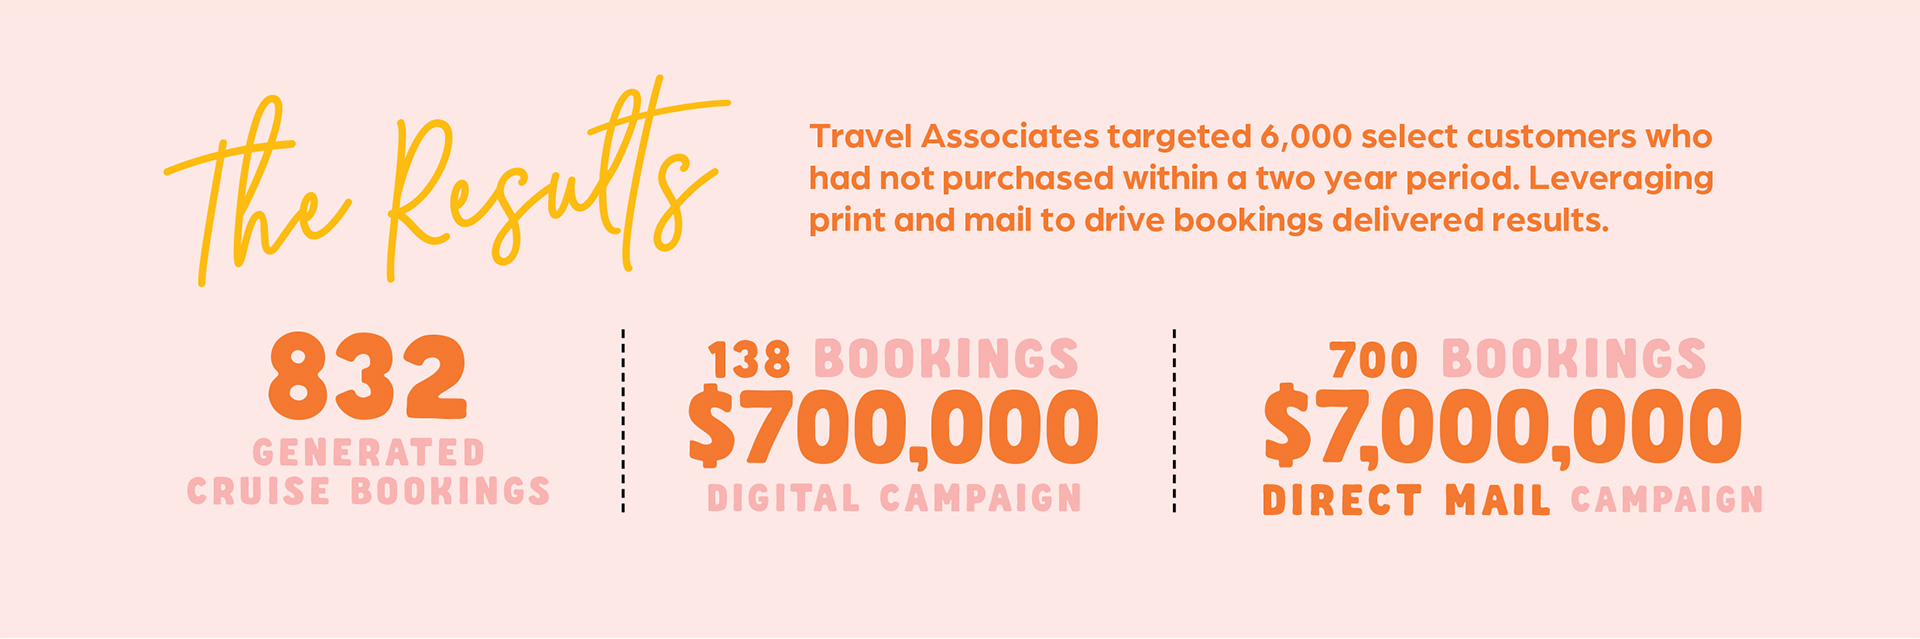 Travel Associates Small Ships Big Experiences Results